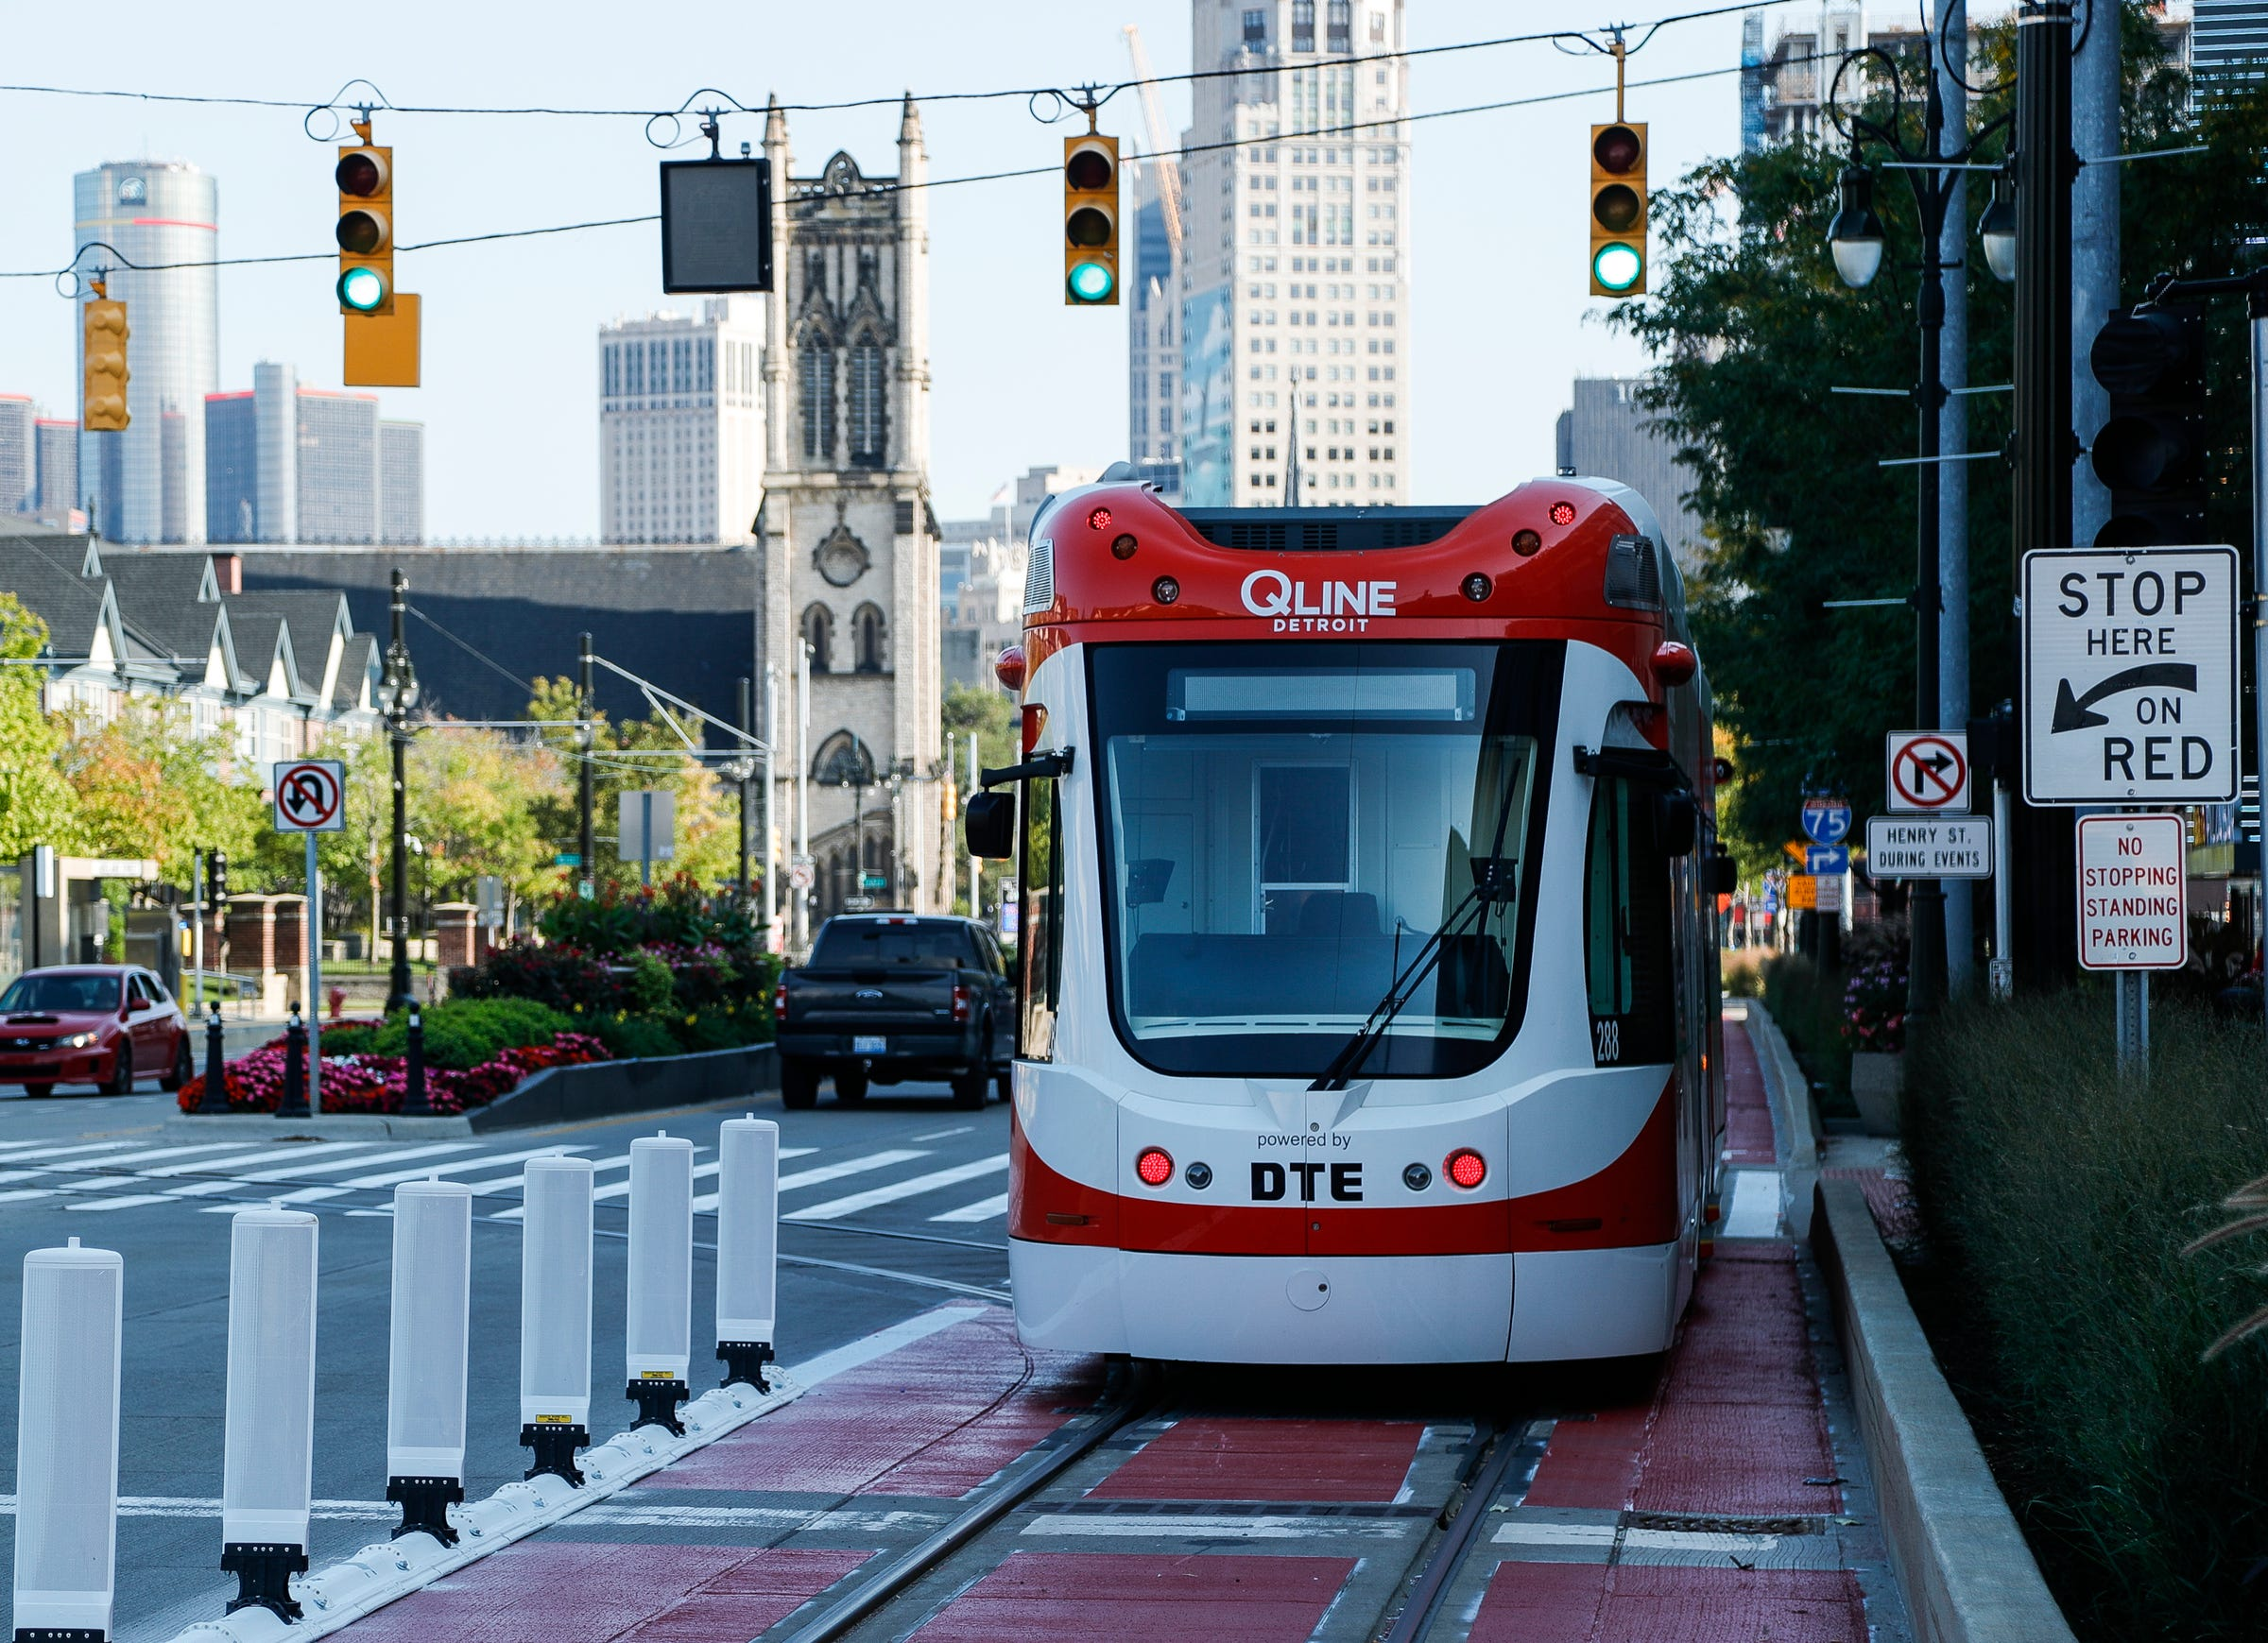 QLINE, buses get transit-only lane in front of Little Caesars Arena